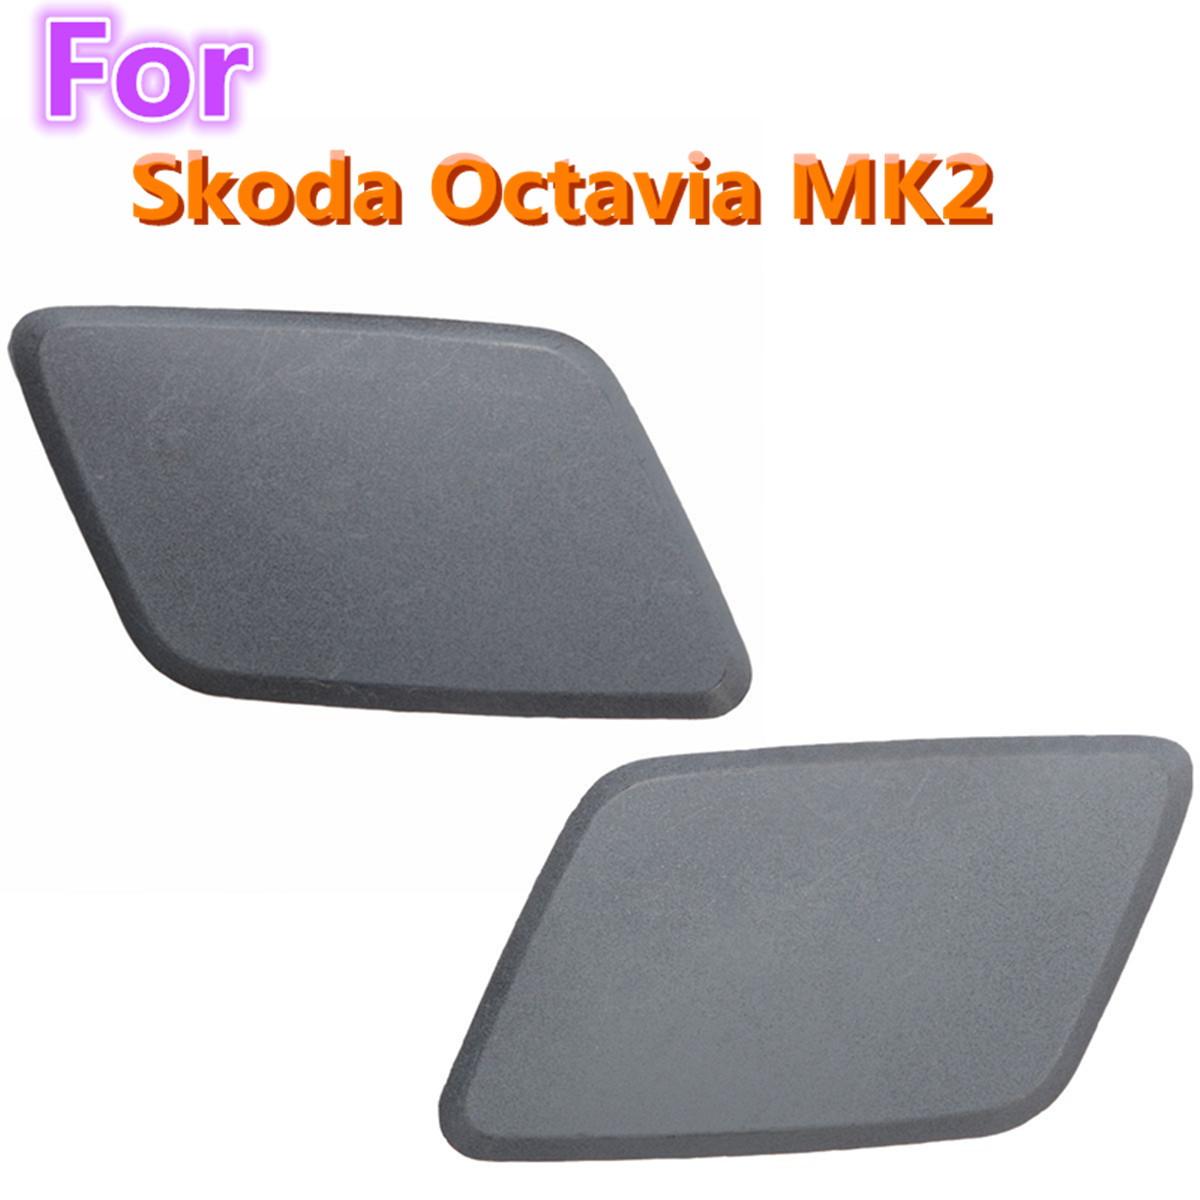 2pcs Car Left Right Headlight Washer Nozzle Jet Cover Cap For Skoda Octavia MK2 N/S/F